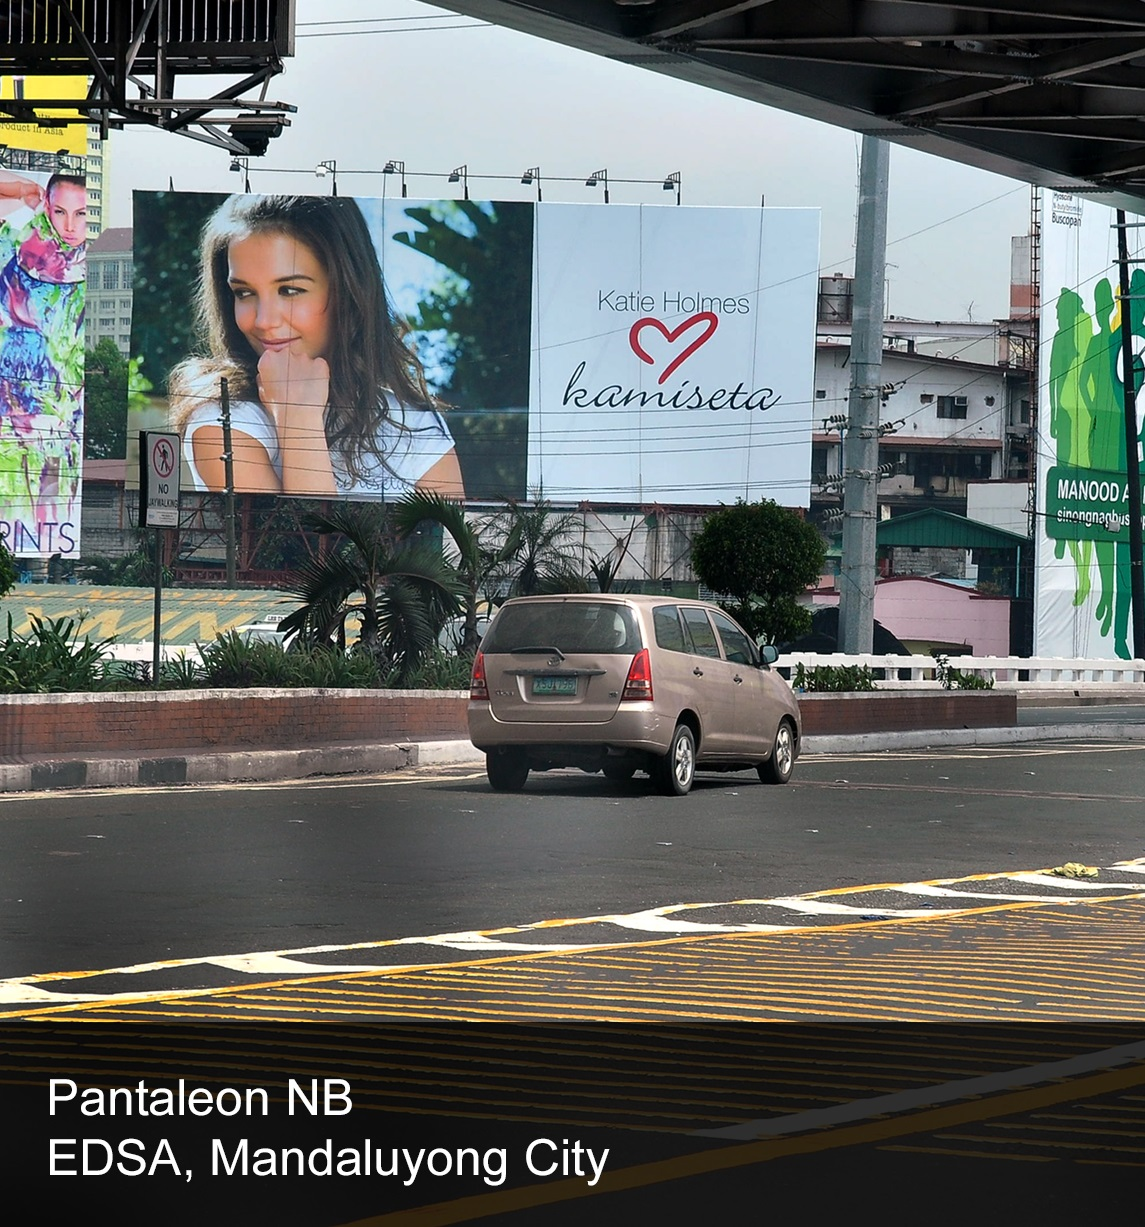 Dooh-ph-billboard-pantaleon-northbound-edsa-mandaluyong-city.jpg